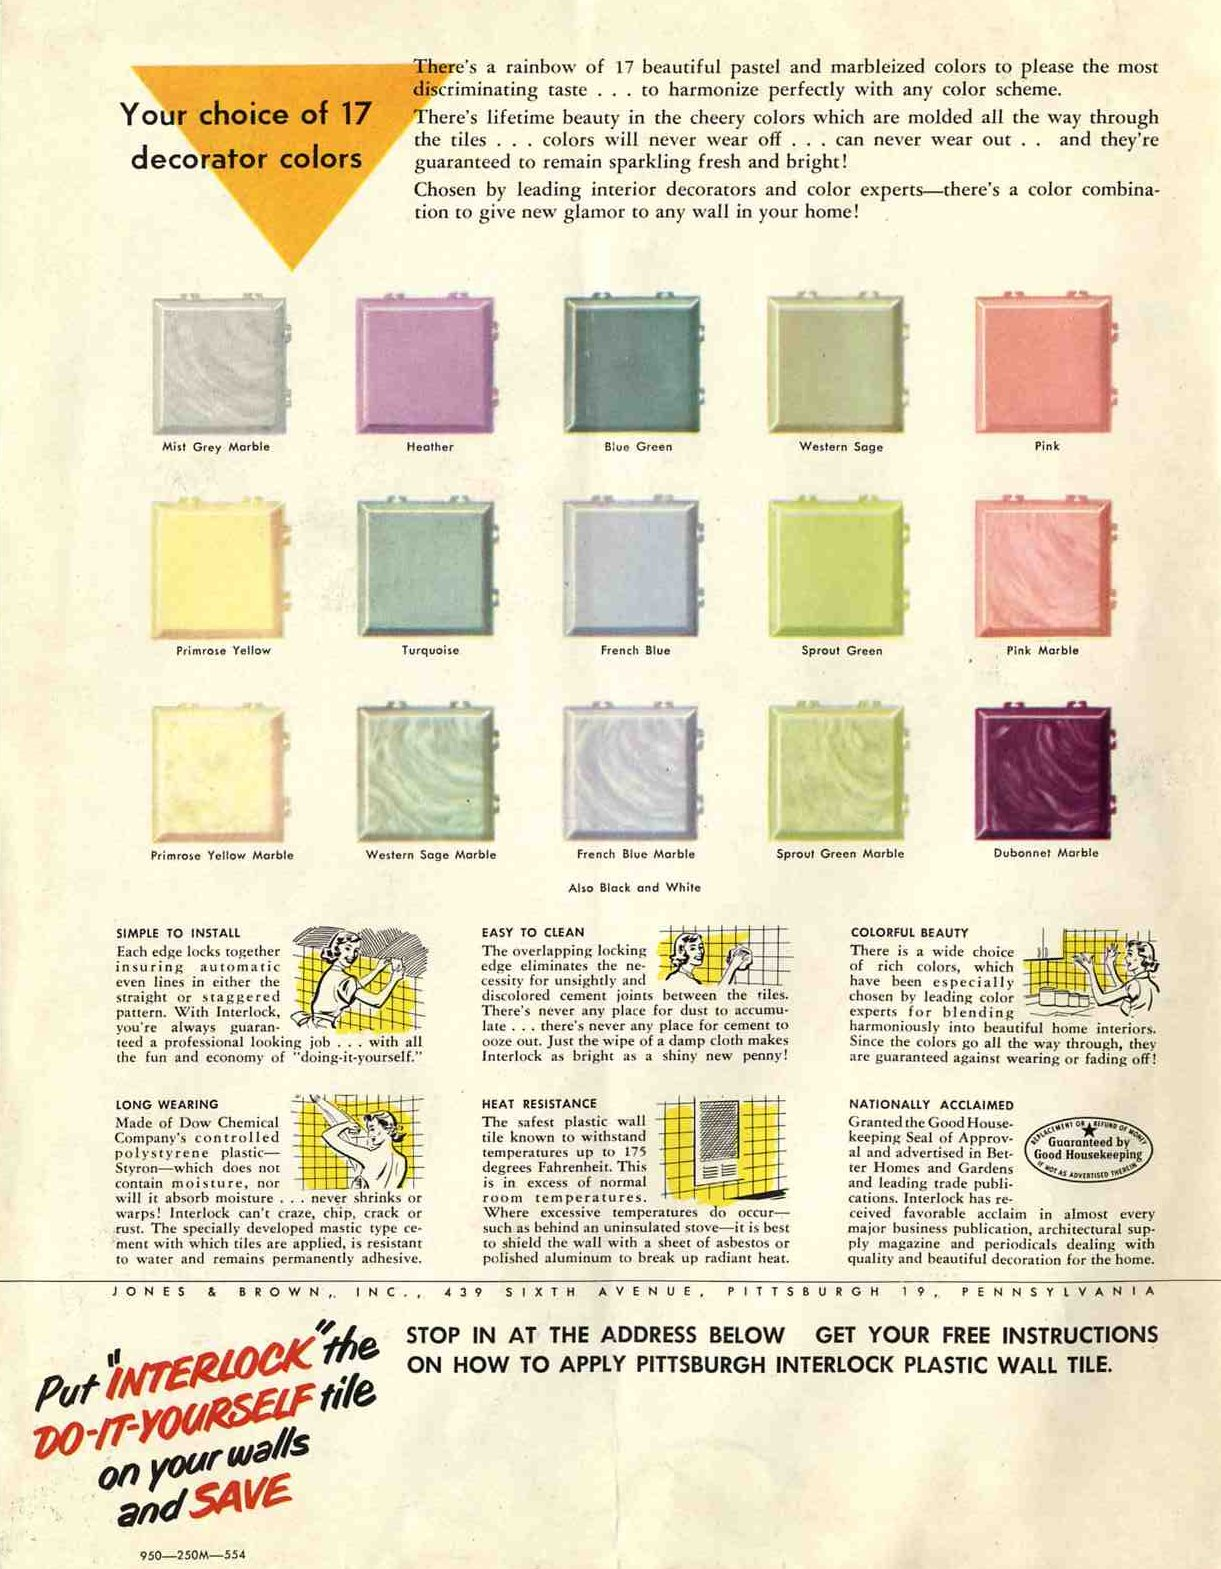 Plastic bathroom tile : 20 pages of images from 3 catalogs - Retro  title=